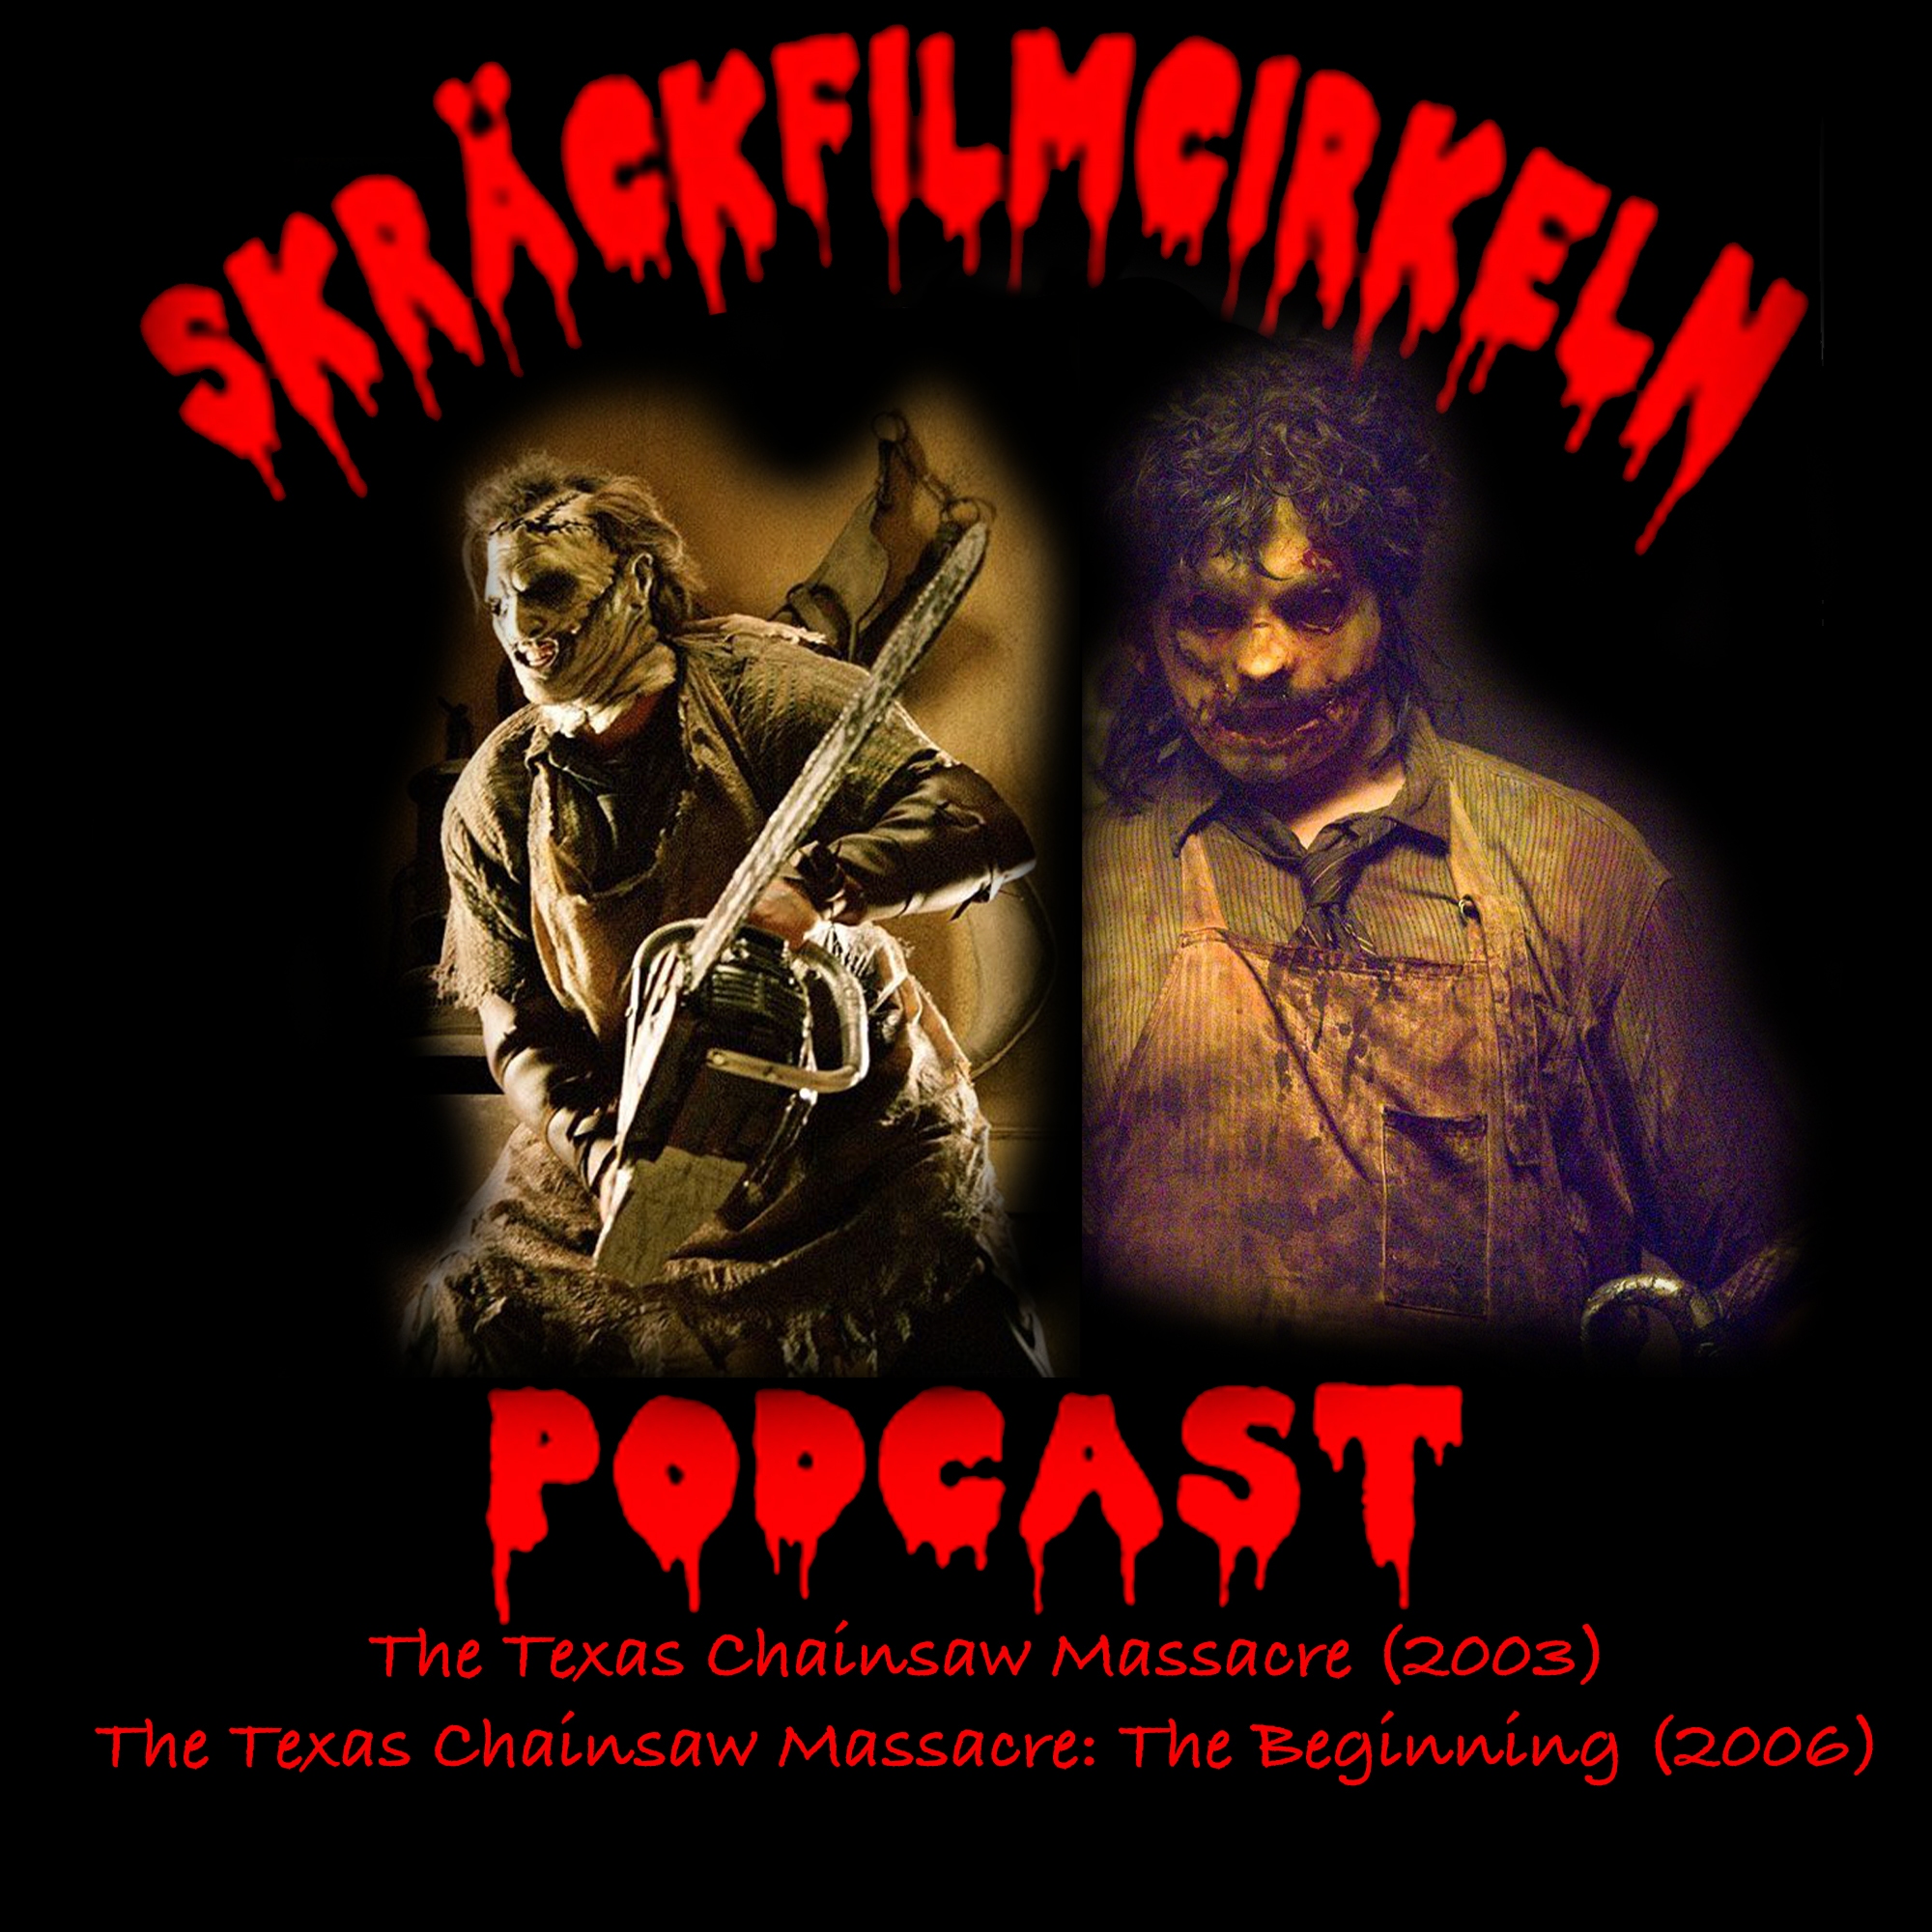 Episode 37 – Texas Chainsaw Massacre 5-6 DoubleBill